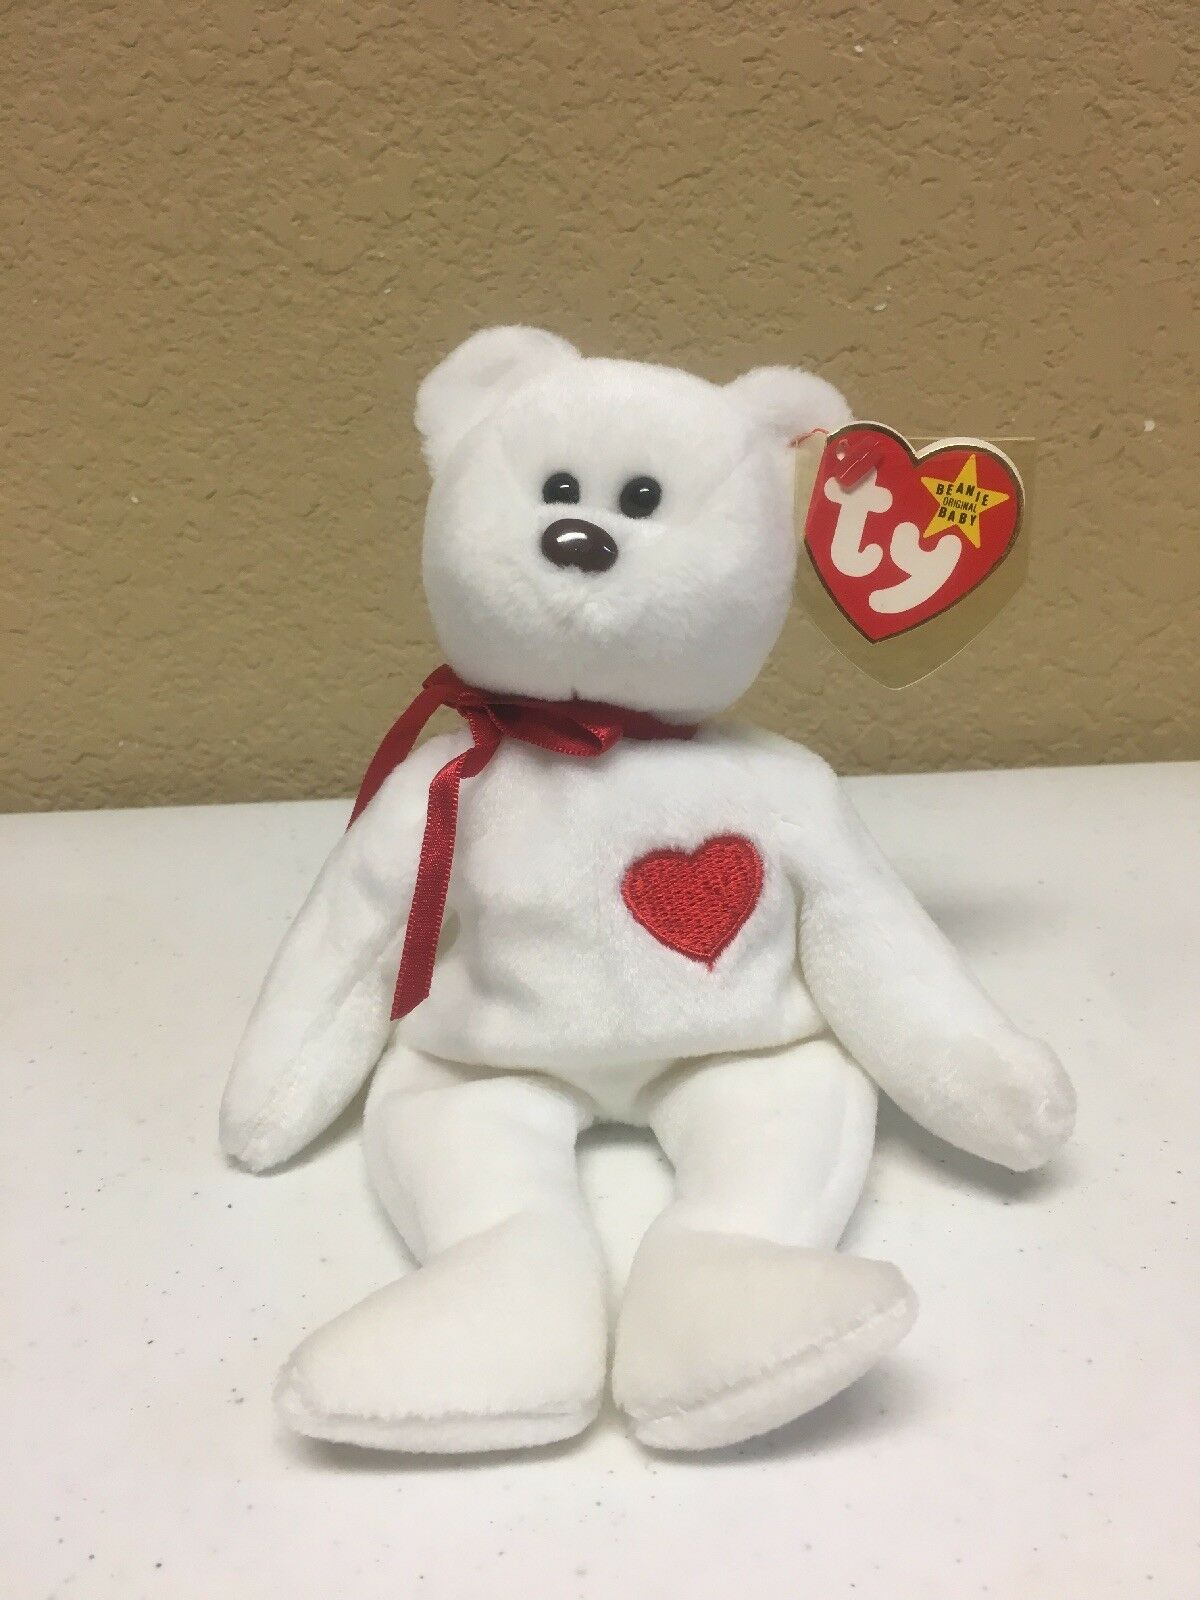 VALENTINO 1993 TY Beanie Baby Brown Nose Nose Nose  PVC Rare Collectible   8df66c